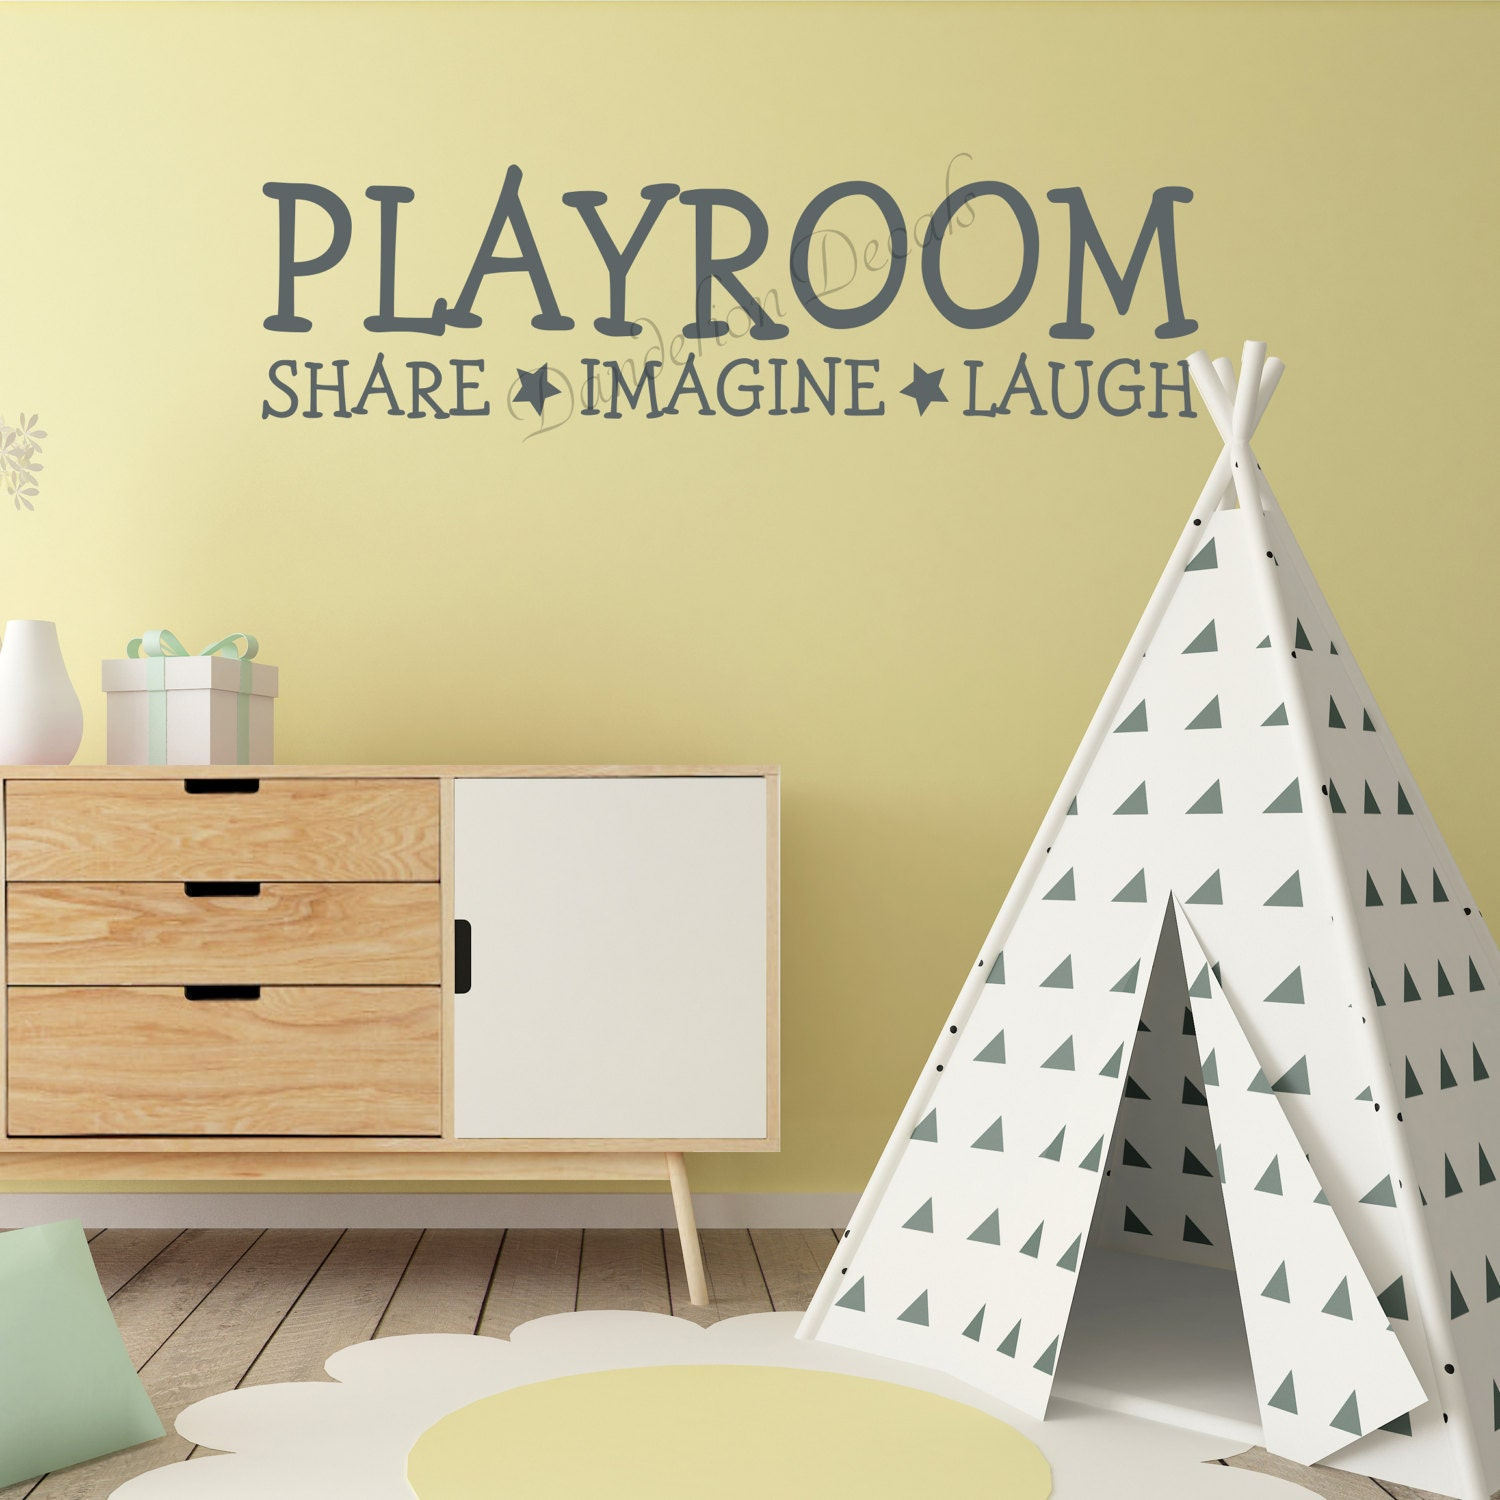 Playroom Wall Decal Share Imagine Laugh Kids Room Wall | Etsy